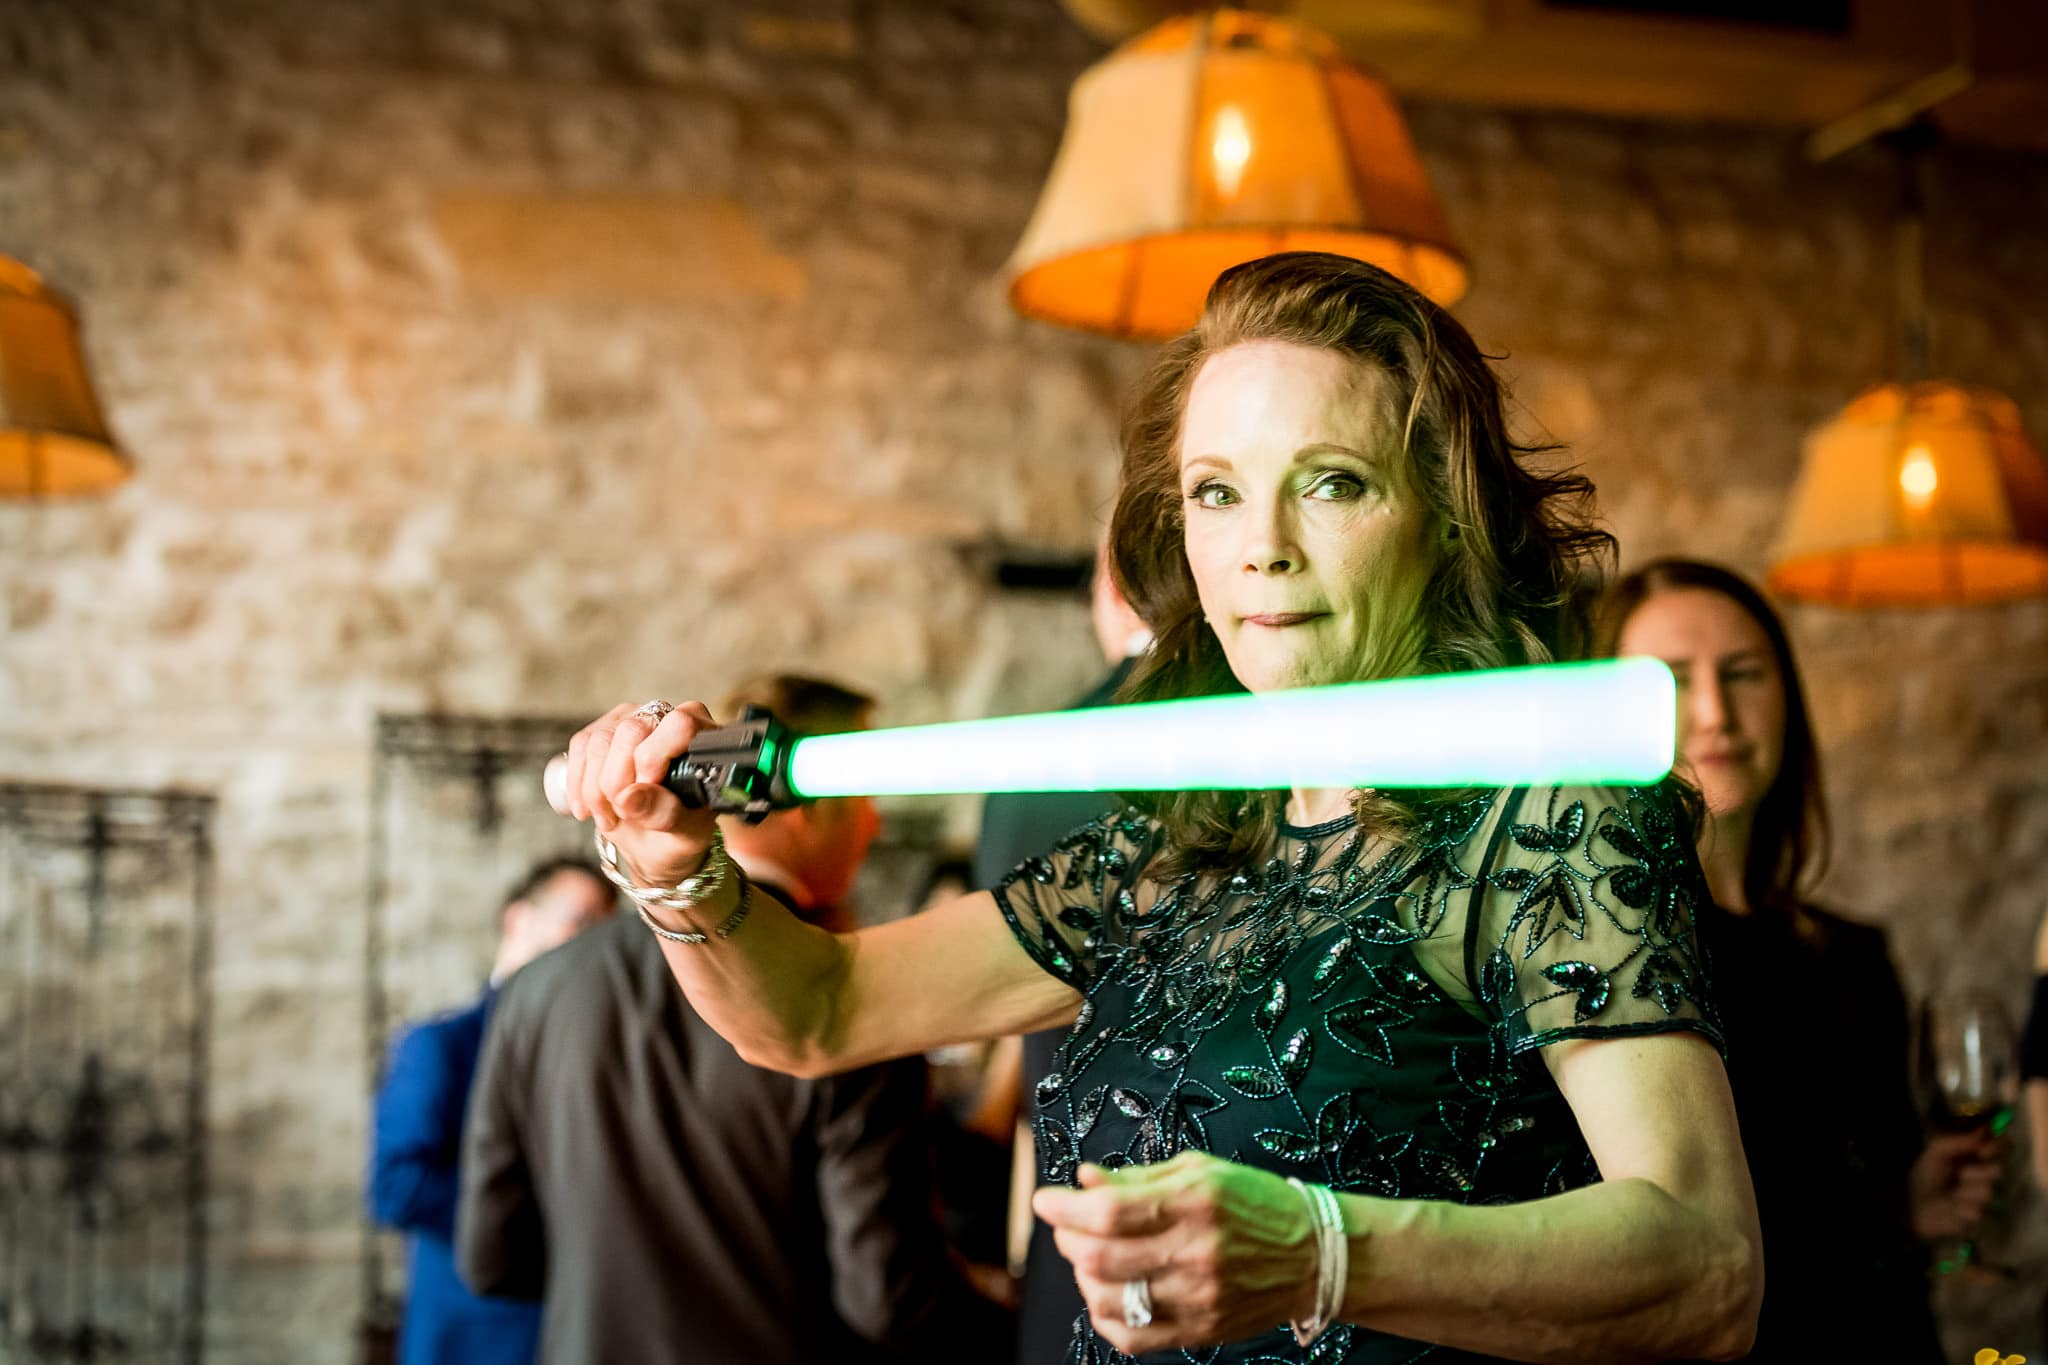 Star Wars Light Saber battle during the wedding reception in the River Room at Aster Cafe 4